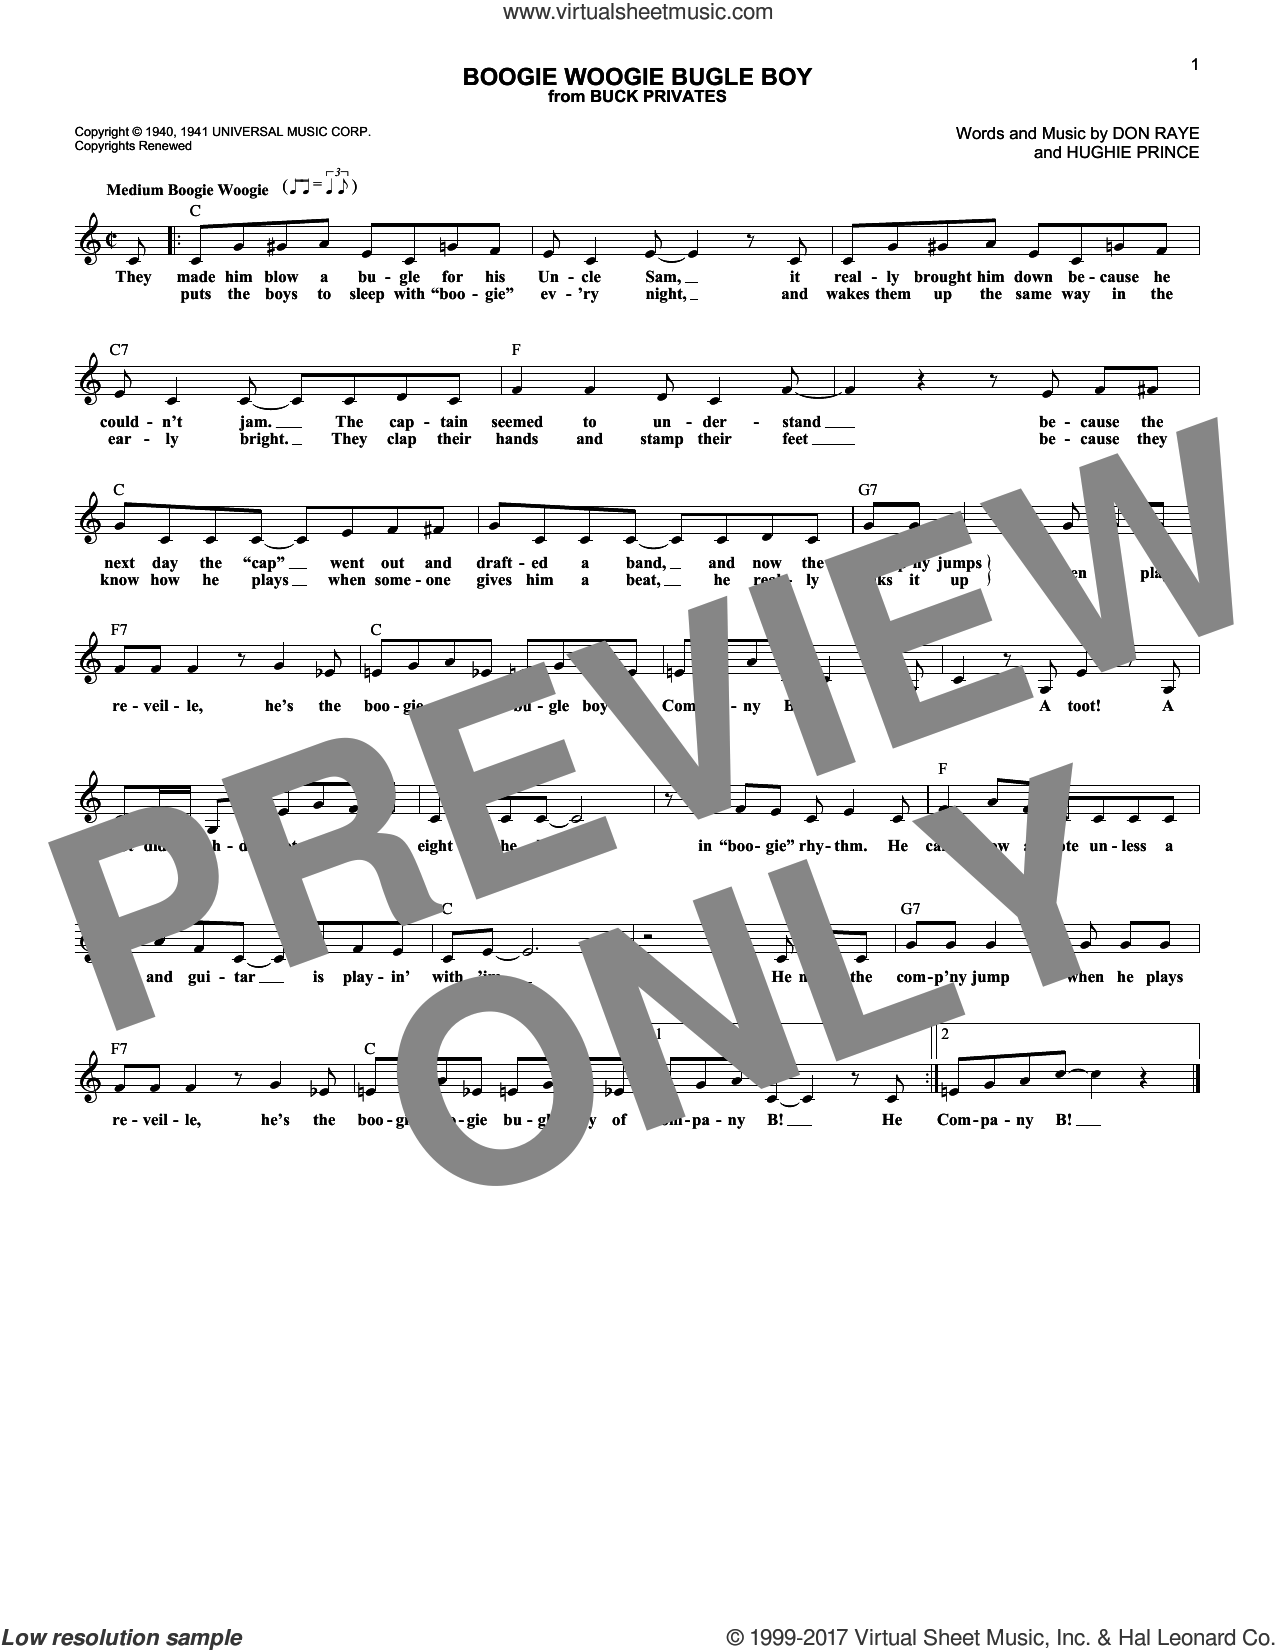 Boogie Woogie Bugle Boy sheet music for voice and other instruments (fake book) by Andrews Sisters, Bette Midler, Don Raye and Hughie Prince, intermediate skill level